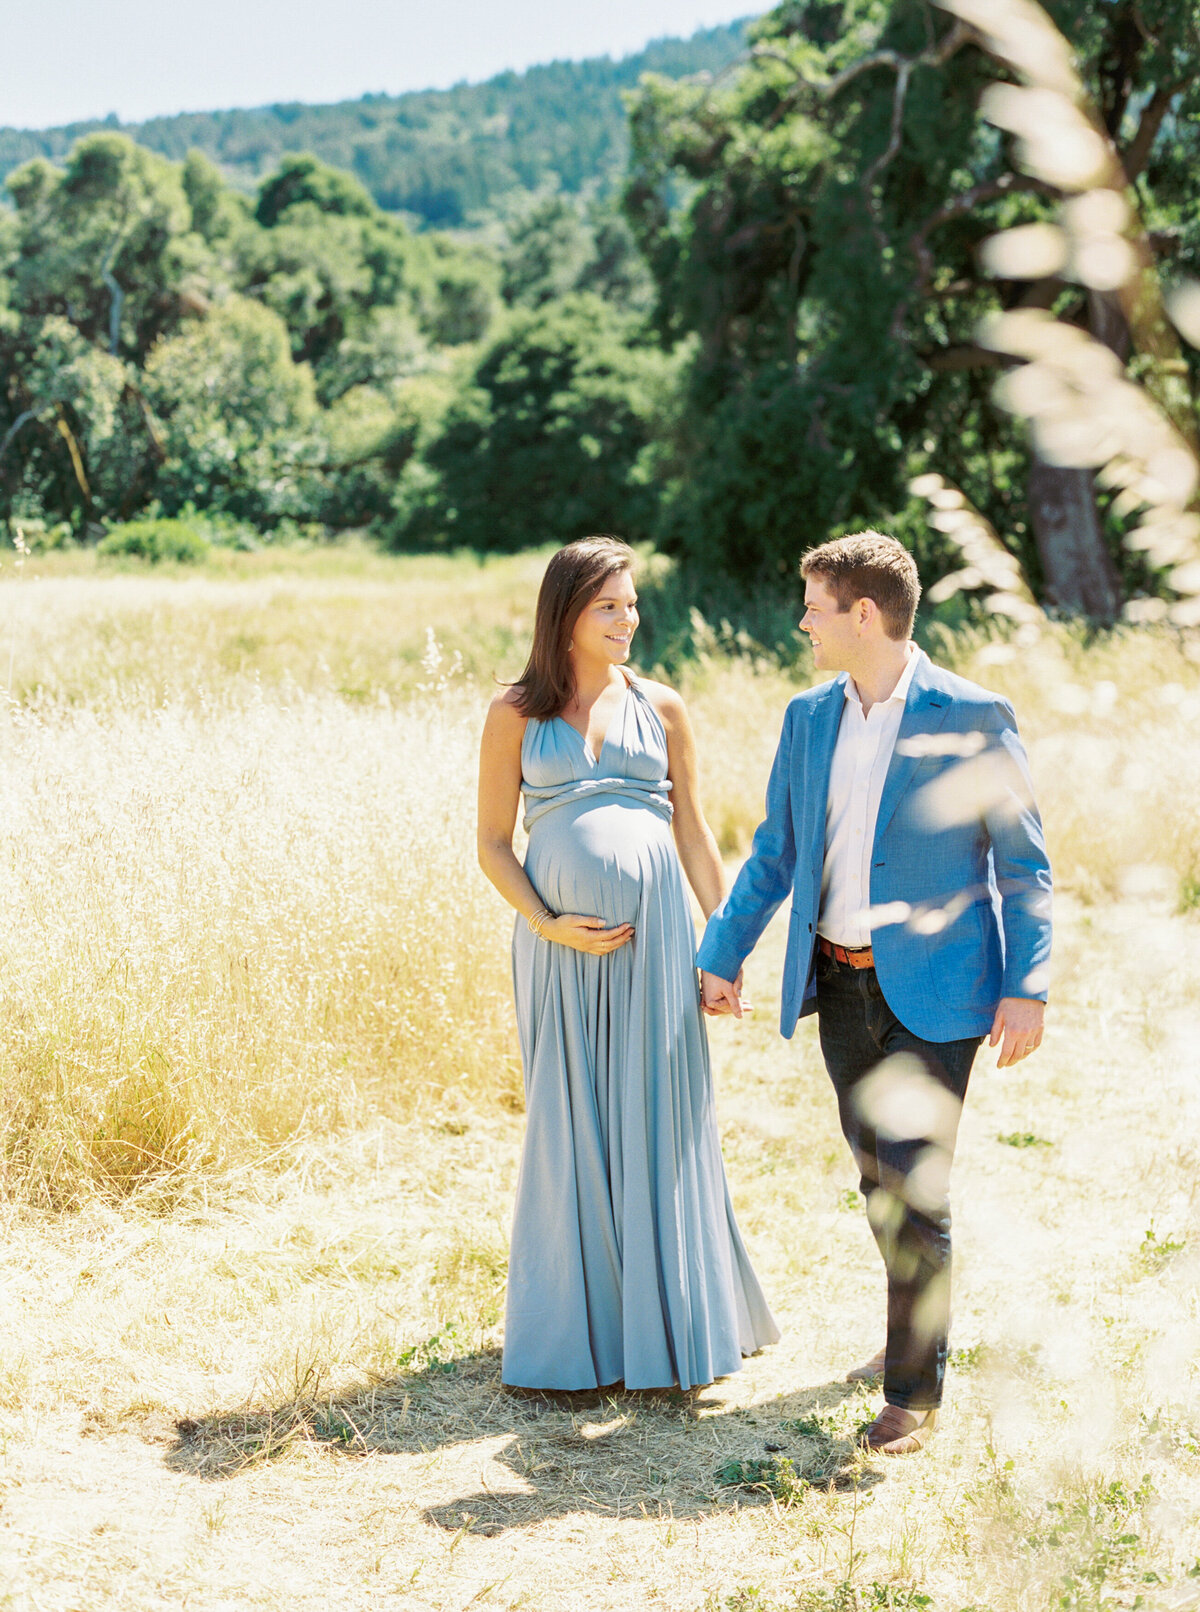 Olivia Marshall Photography-Filoli Maternity Photos-5